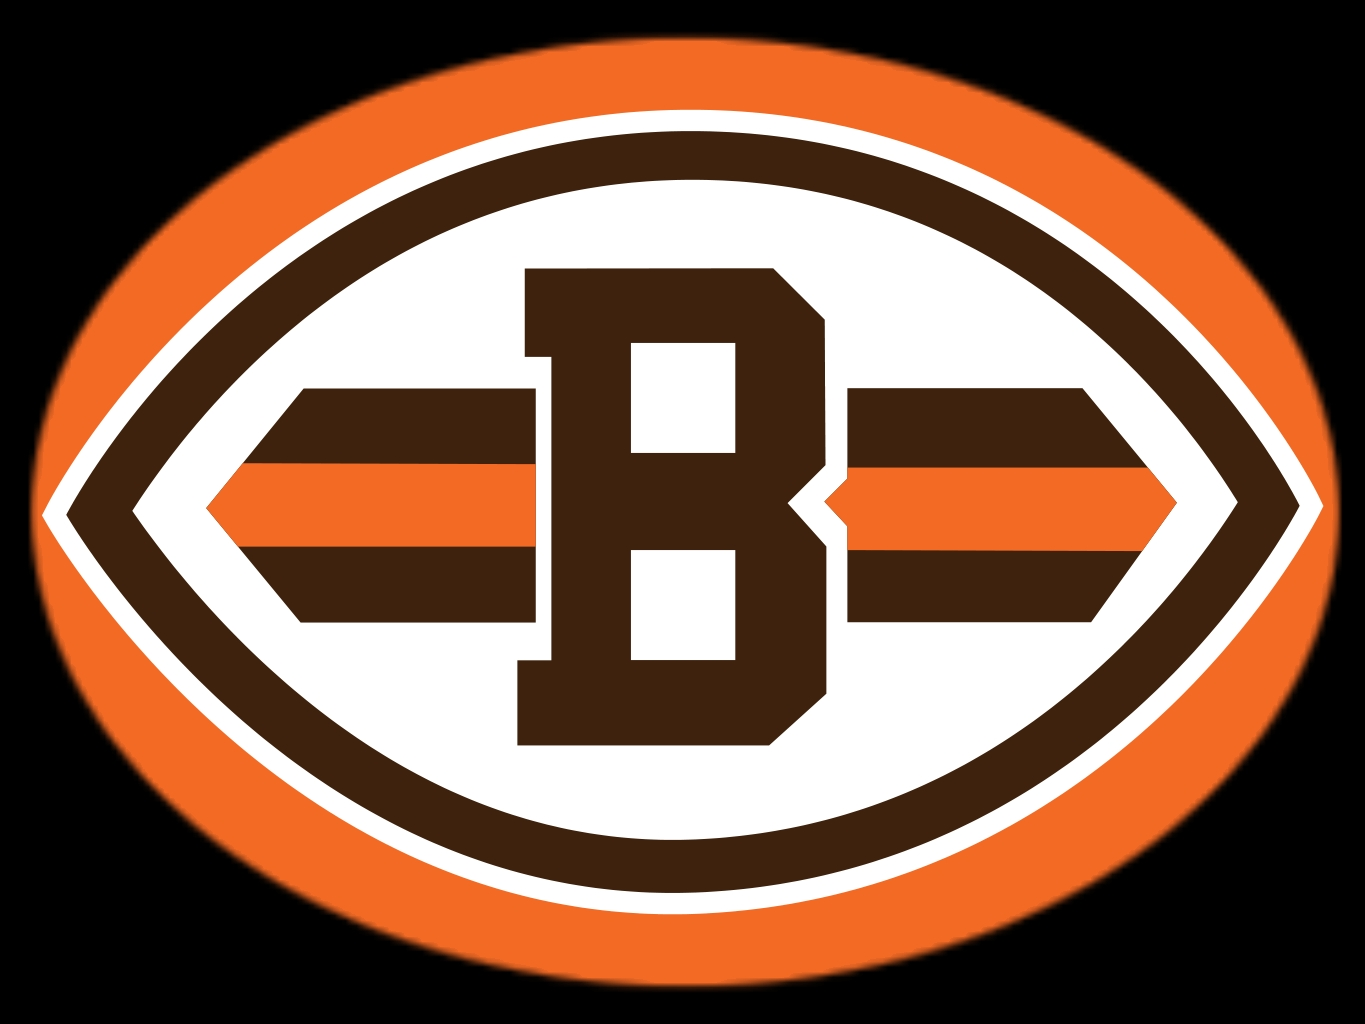 Cleveland Browns Backgrounds on Wallpapers Vista